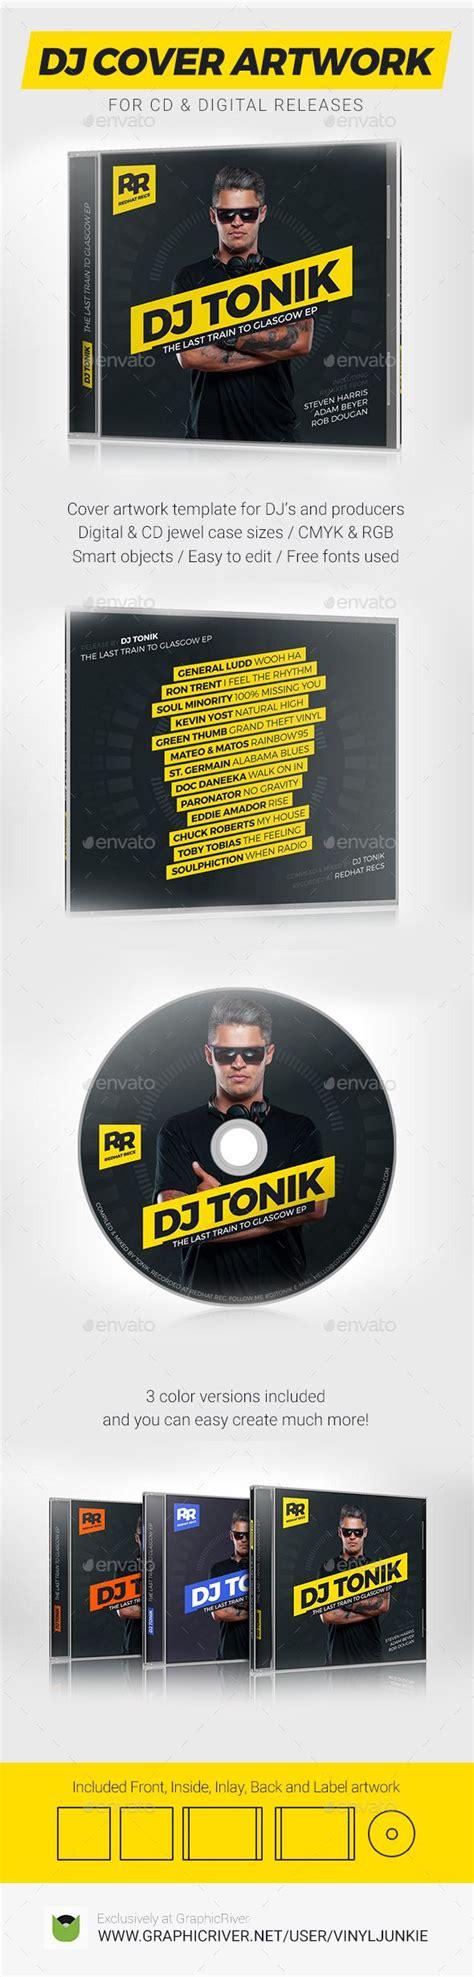 1000 Images About Dj Mix Cd Cover Artwork Templates On Pinterest Merry Christmas Flats And Free Press Kit Template Psd